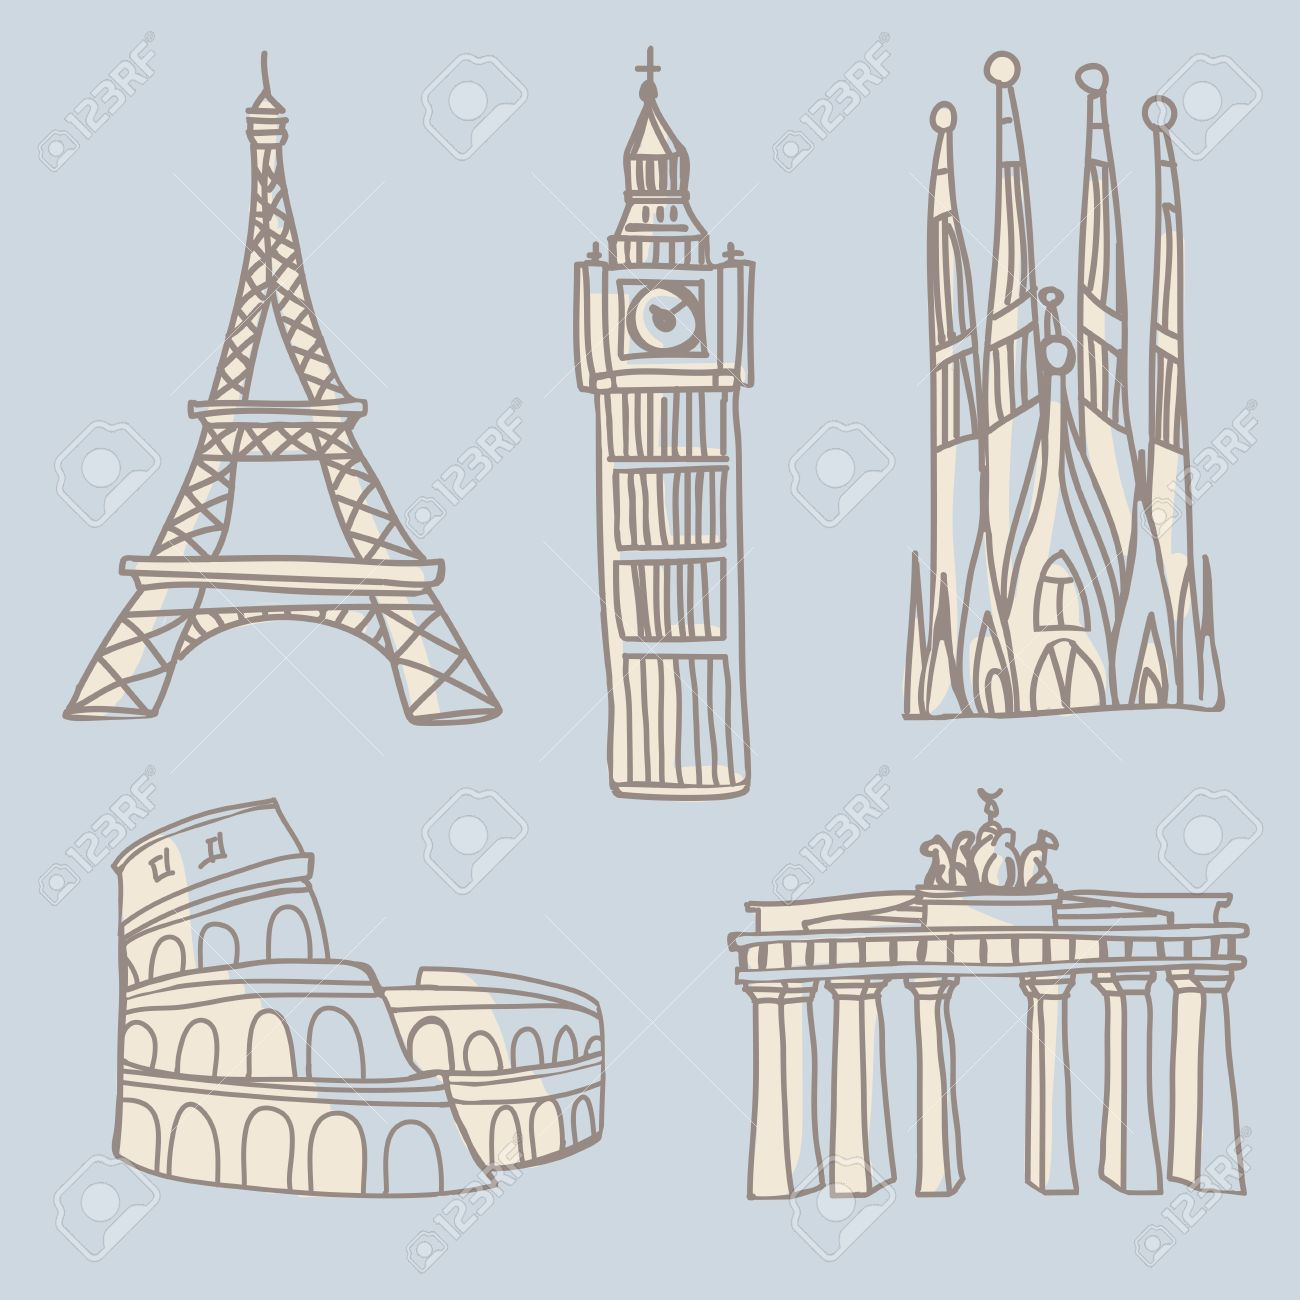 Doodle drawings of famous architectural landmarks  Eiffel Tower,